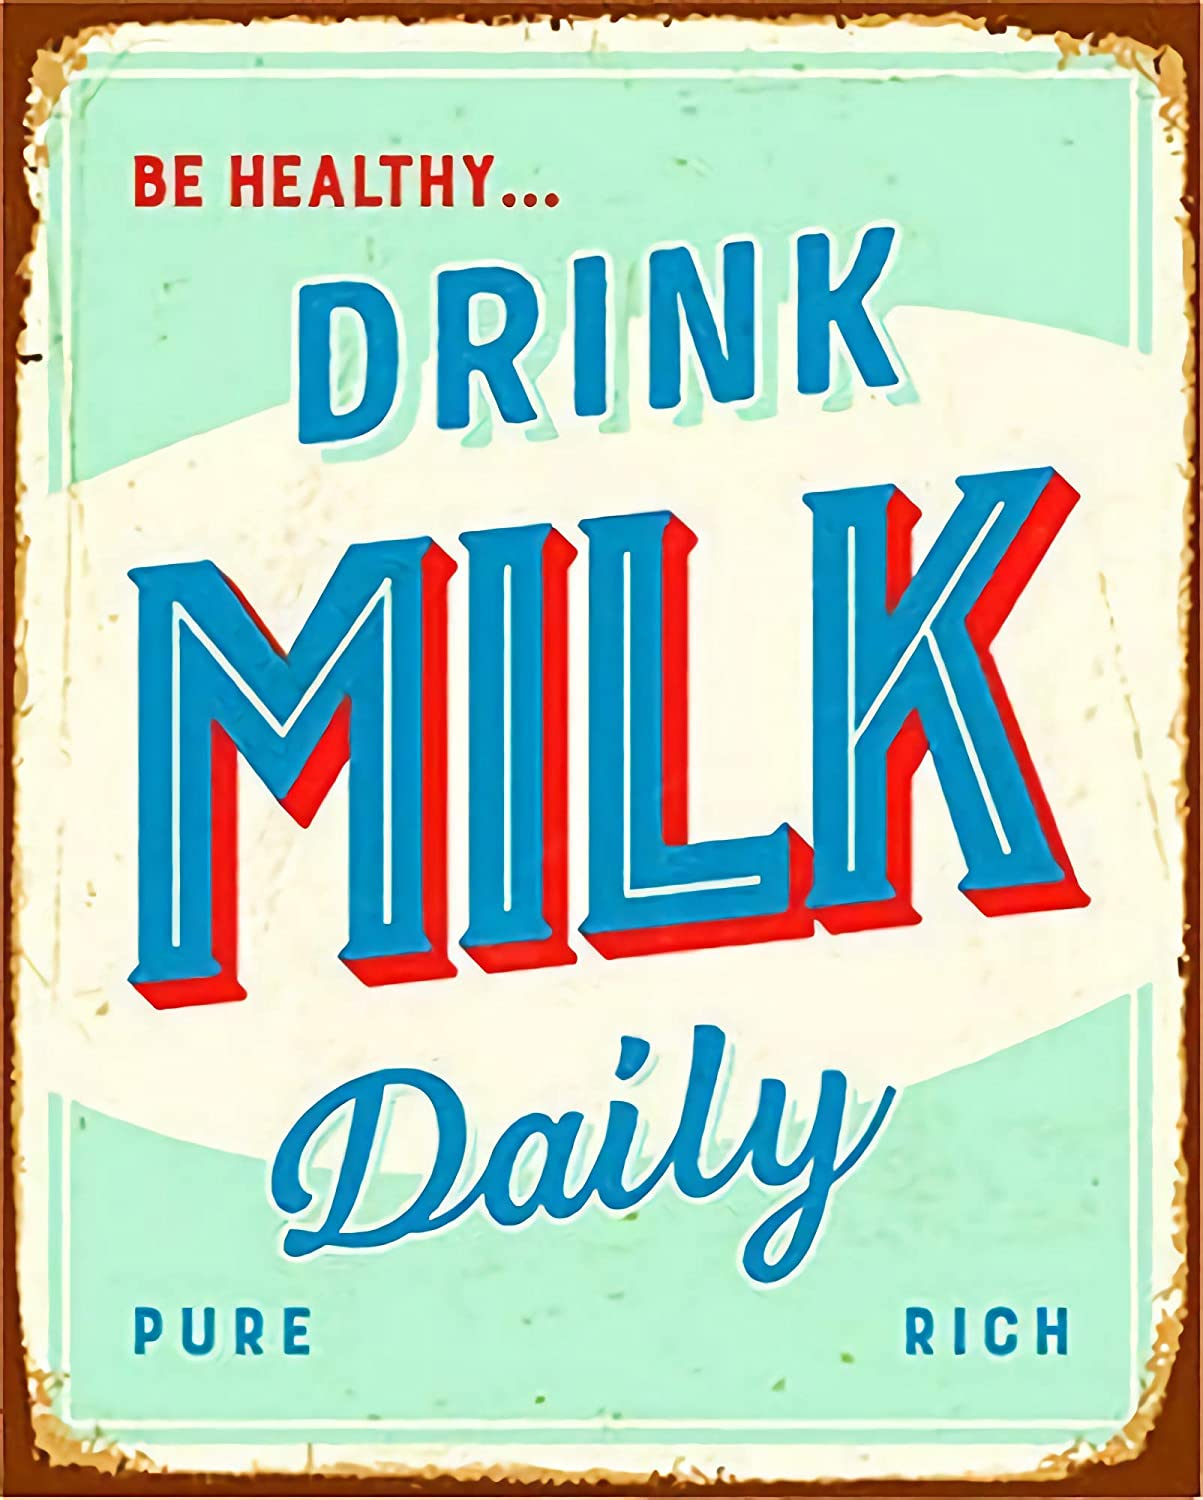 Vintage New Metal Poster Drink Milk Daily Rust Metal Tin Sign 8x12 Inch Retro Art House Cafe Shop Bar Restaurant Garage Fast Food Classic Wall Decor Metal Plaque